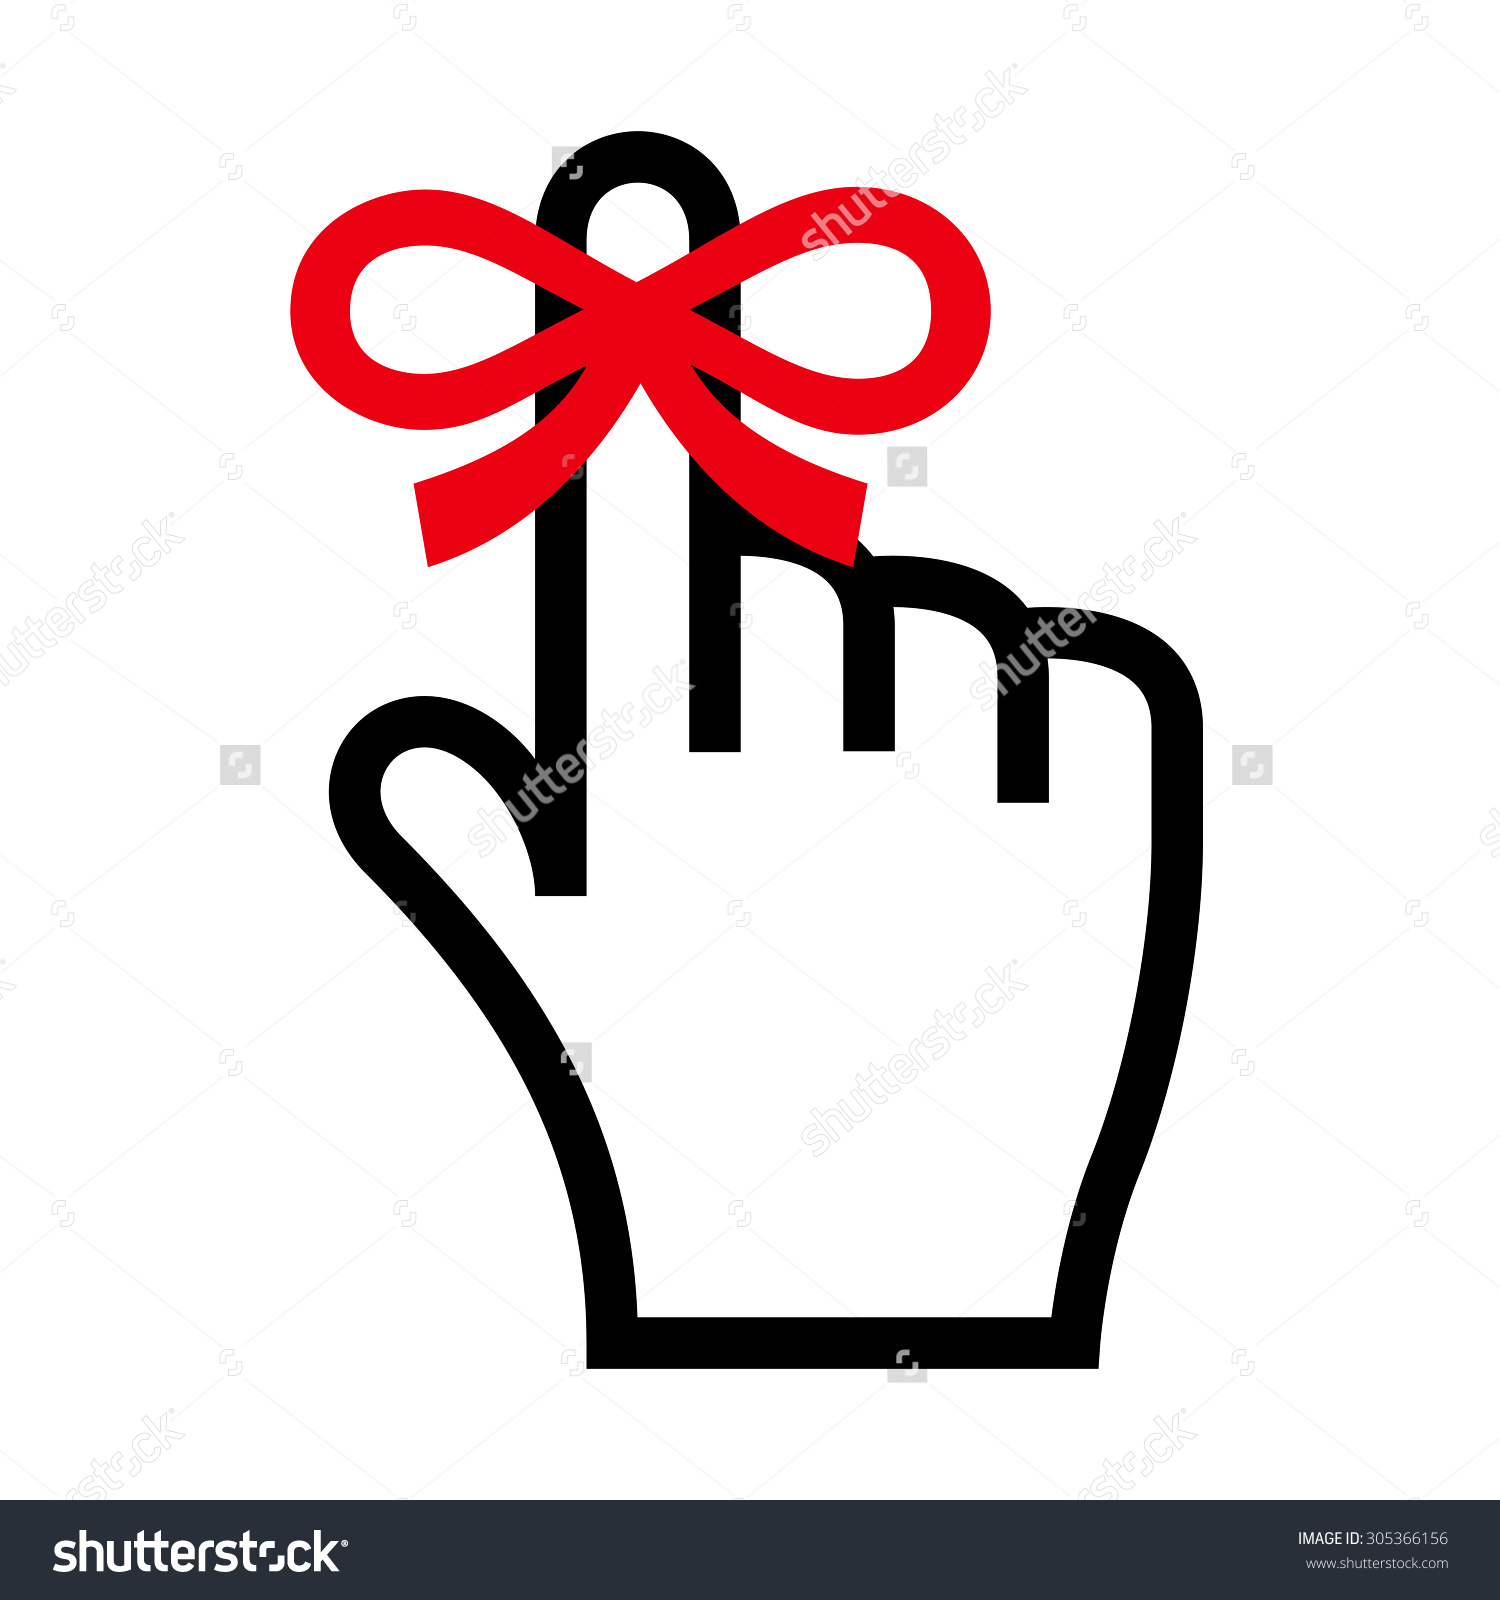 Finger with ribbon clipart clip royalty free Finger with ribbon clipart - ClipartFest clip royalty free